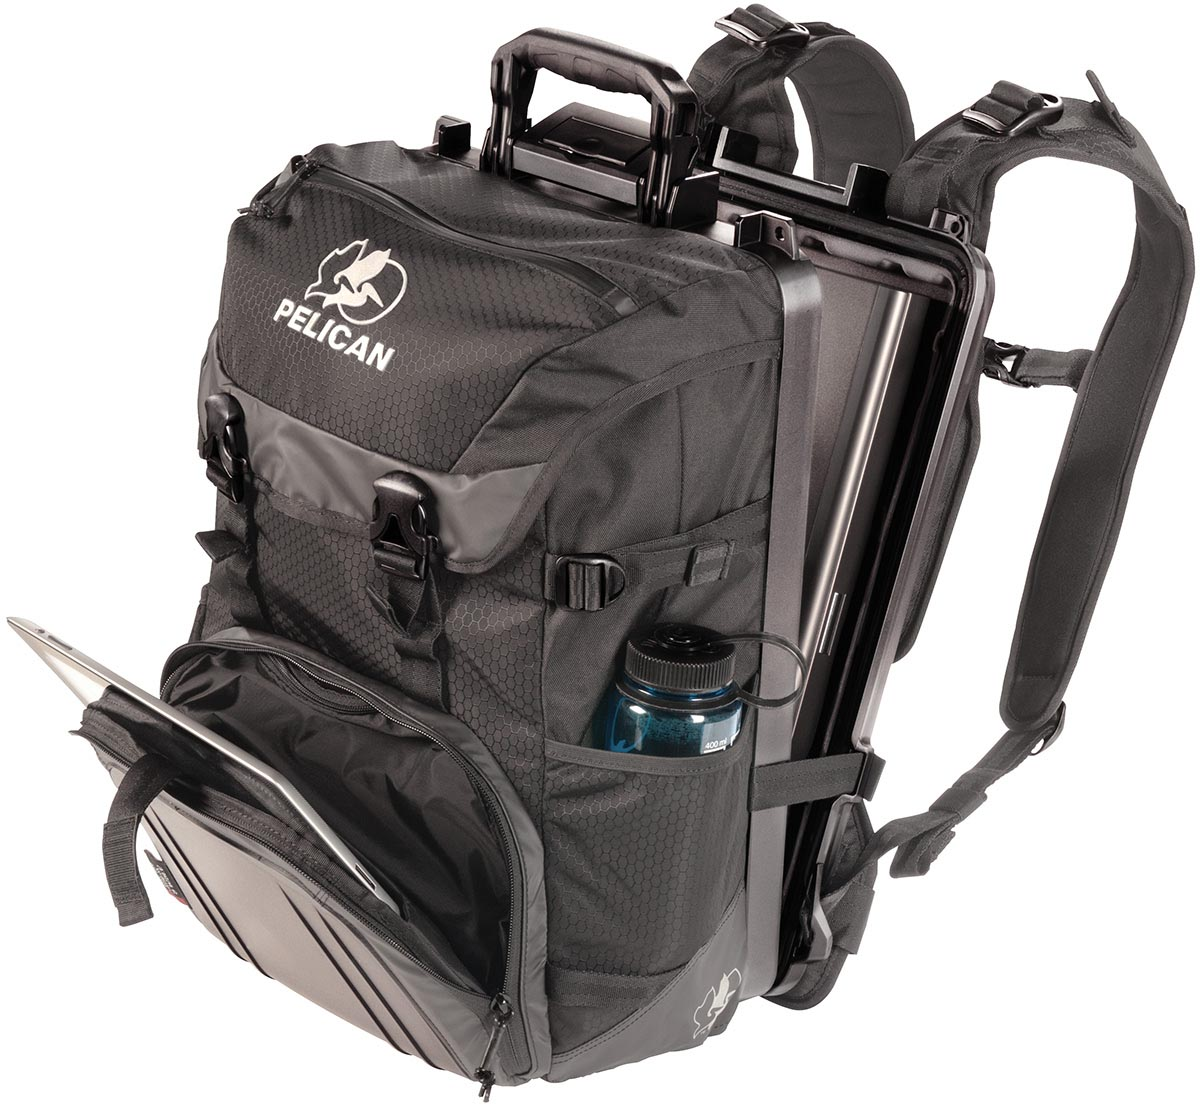 buy pelican backpack s100 best watertight bag